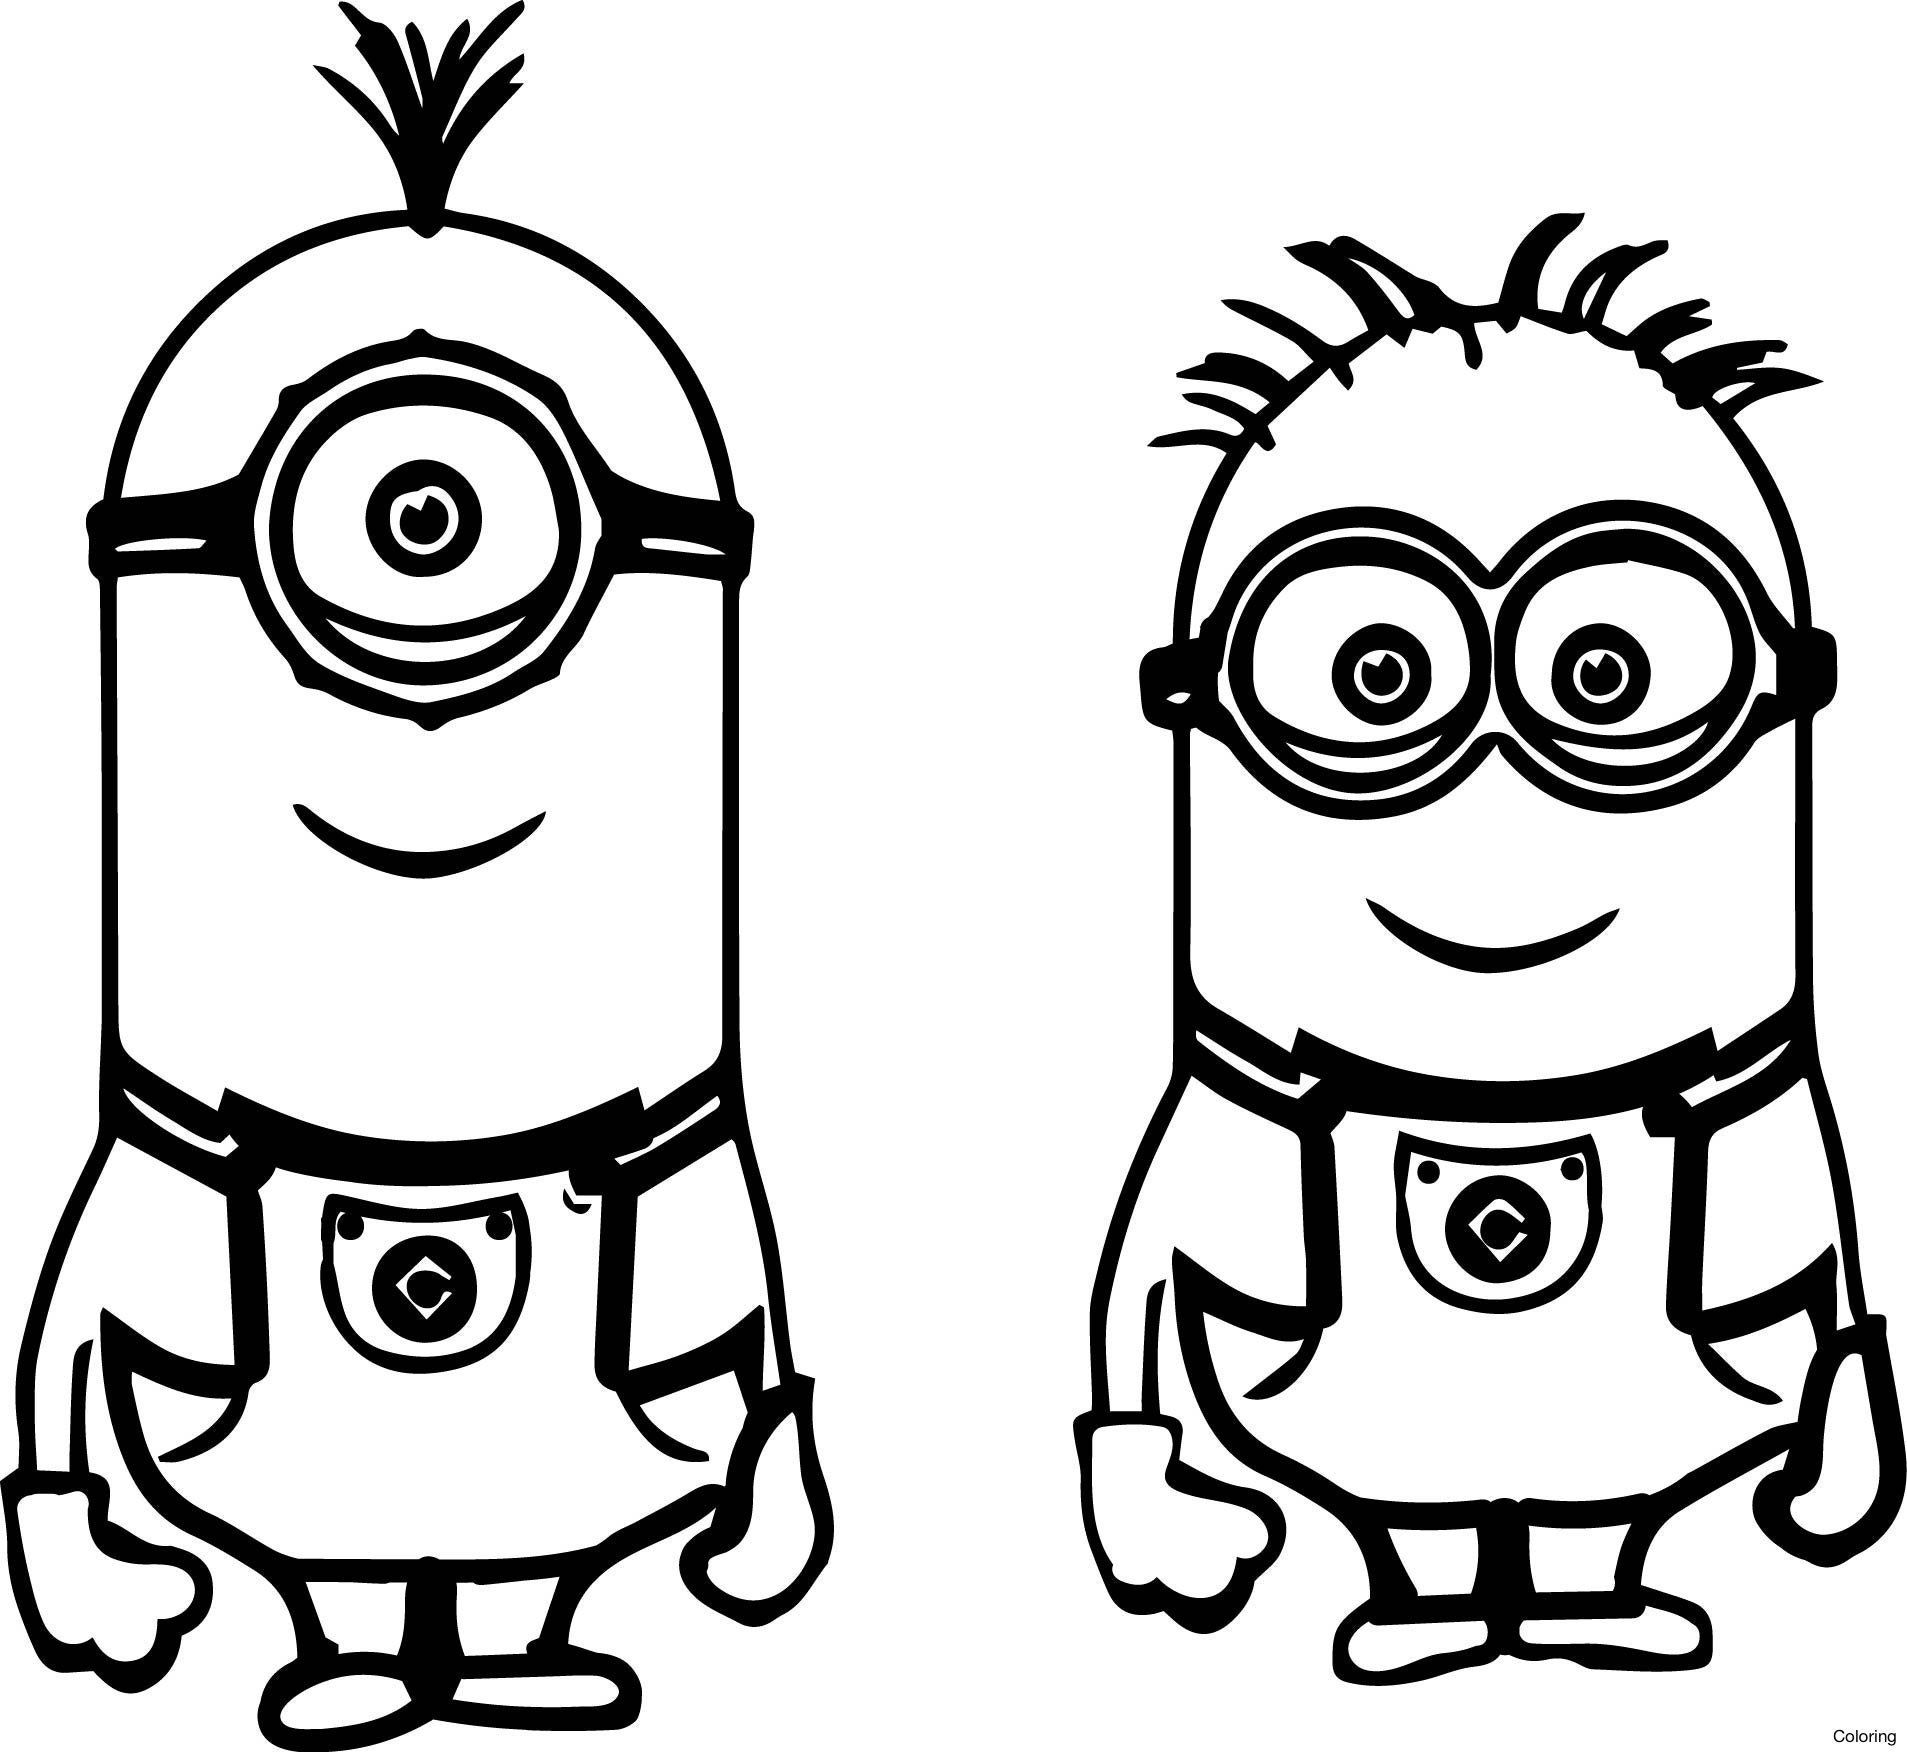 Bob The Builder Coloring Pages Inspirational New Minion Bob Coloring Page Nocn Minions Coloring Pages Minion Coloring Pages Minion Drawing